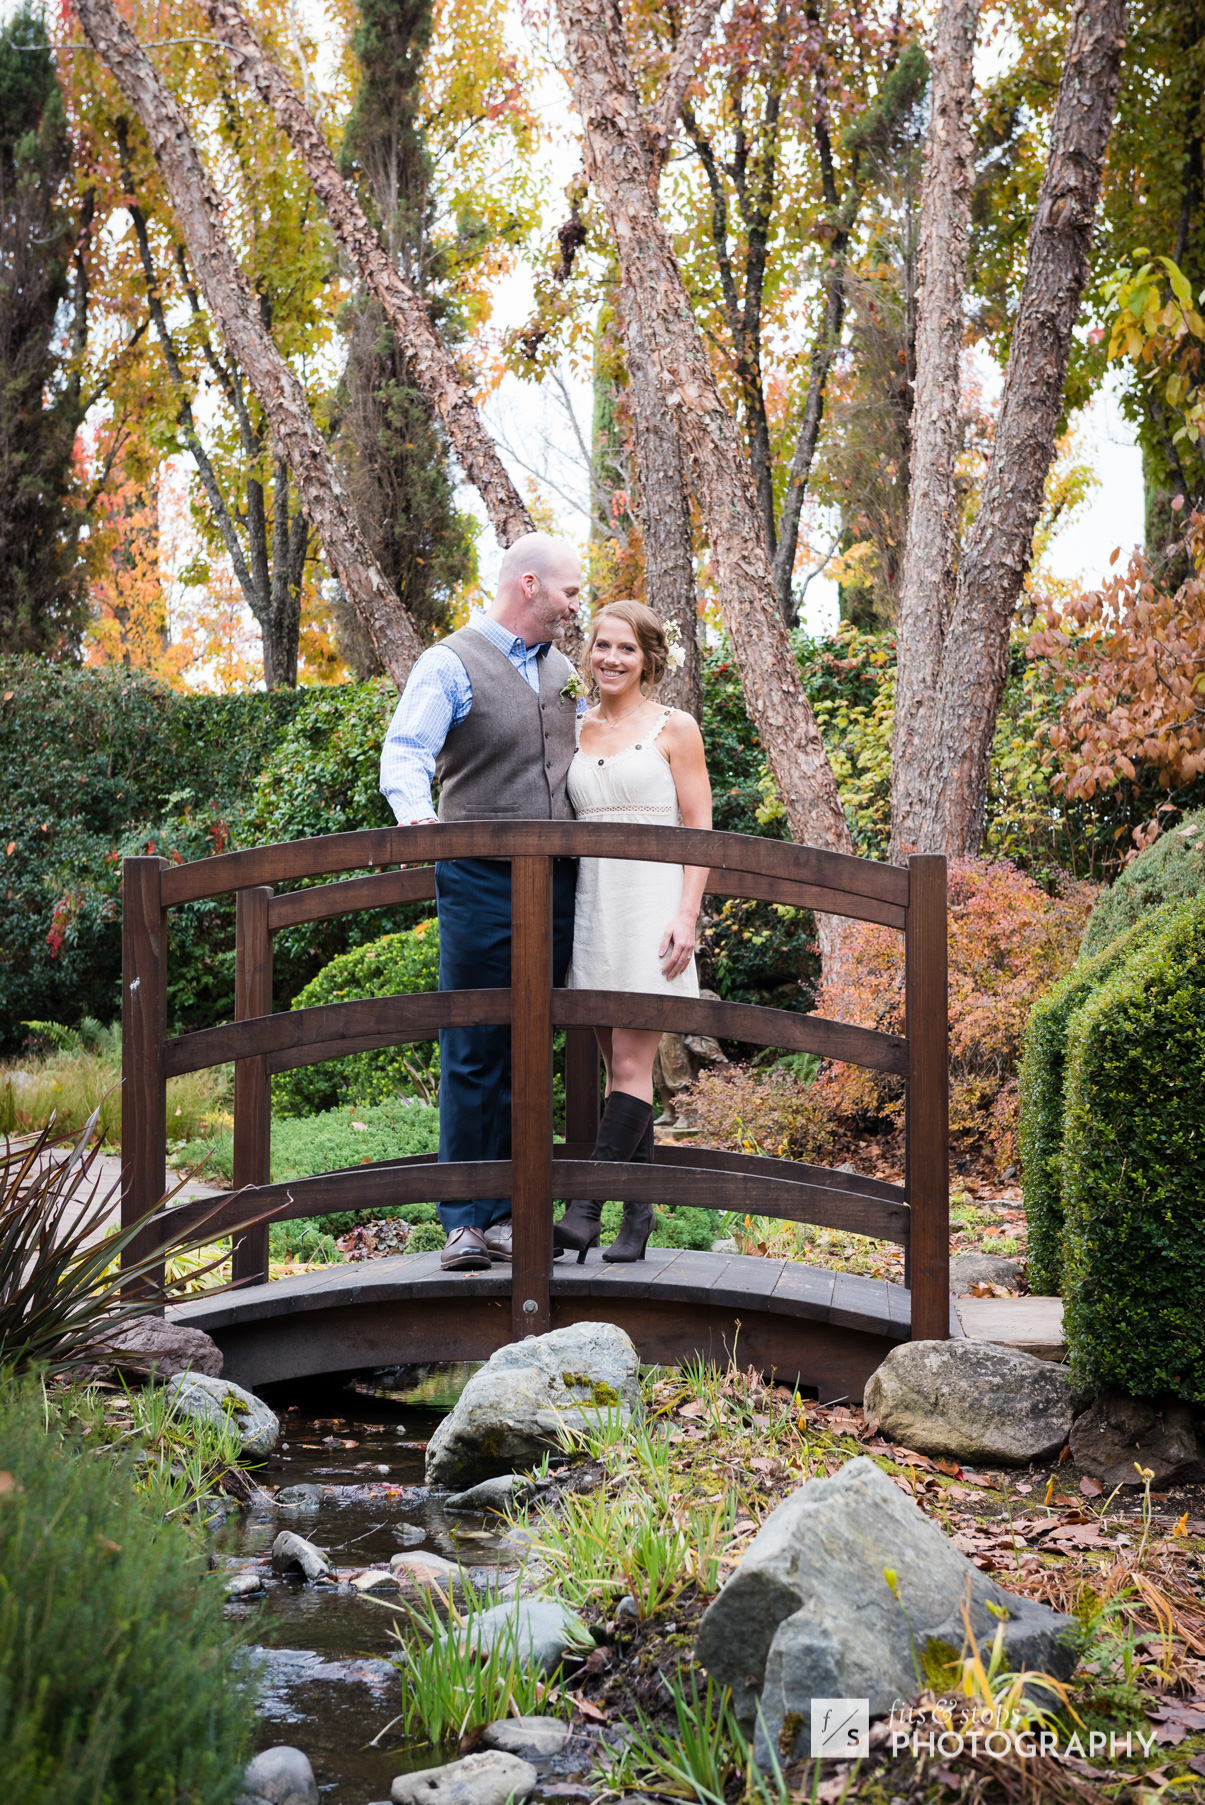 A newly married caucasian couple embraces following their wedding ceremony in a garden, standing on a bridge.